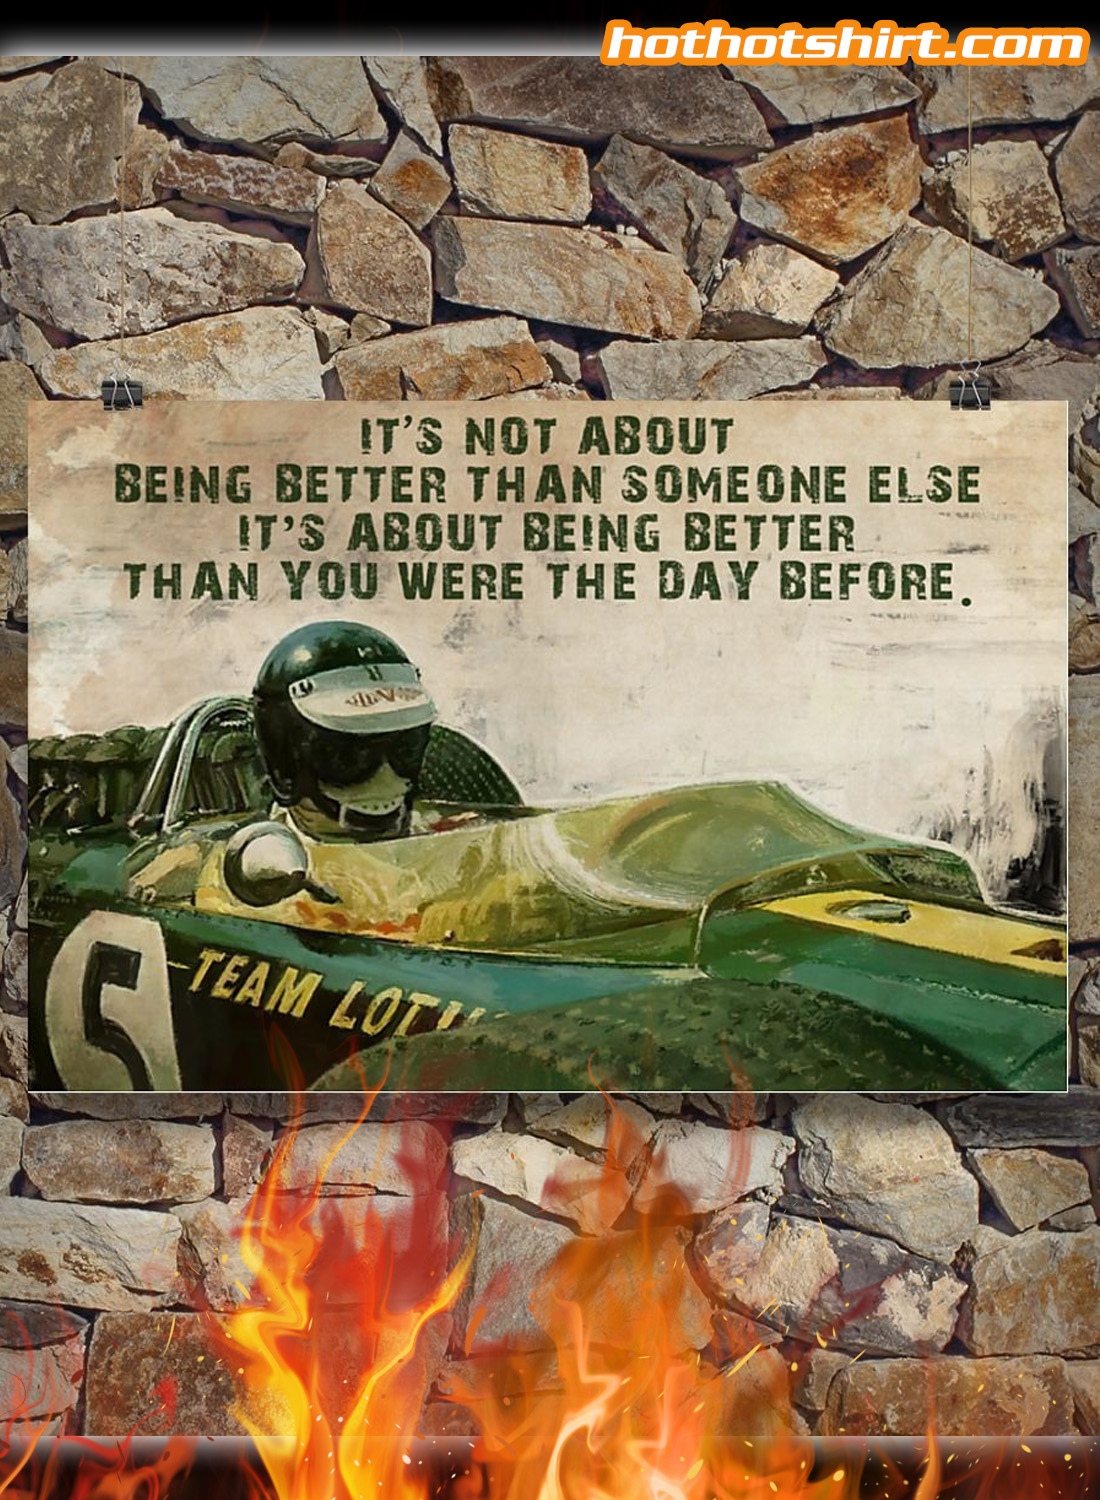 Forza Motorsport Racer It's not about being better than someone else poster 2